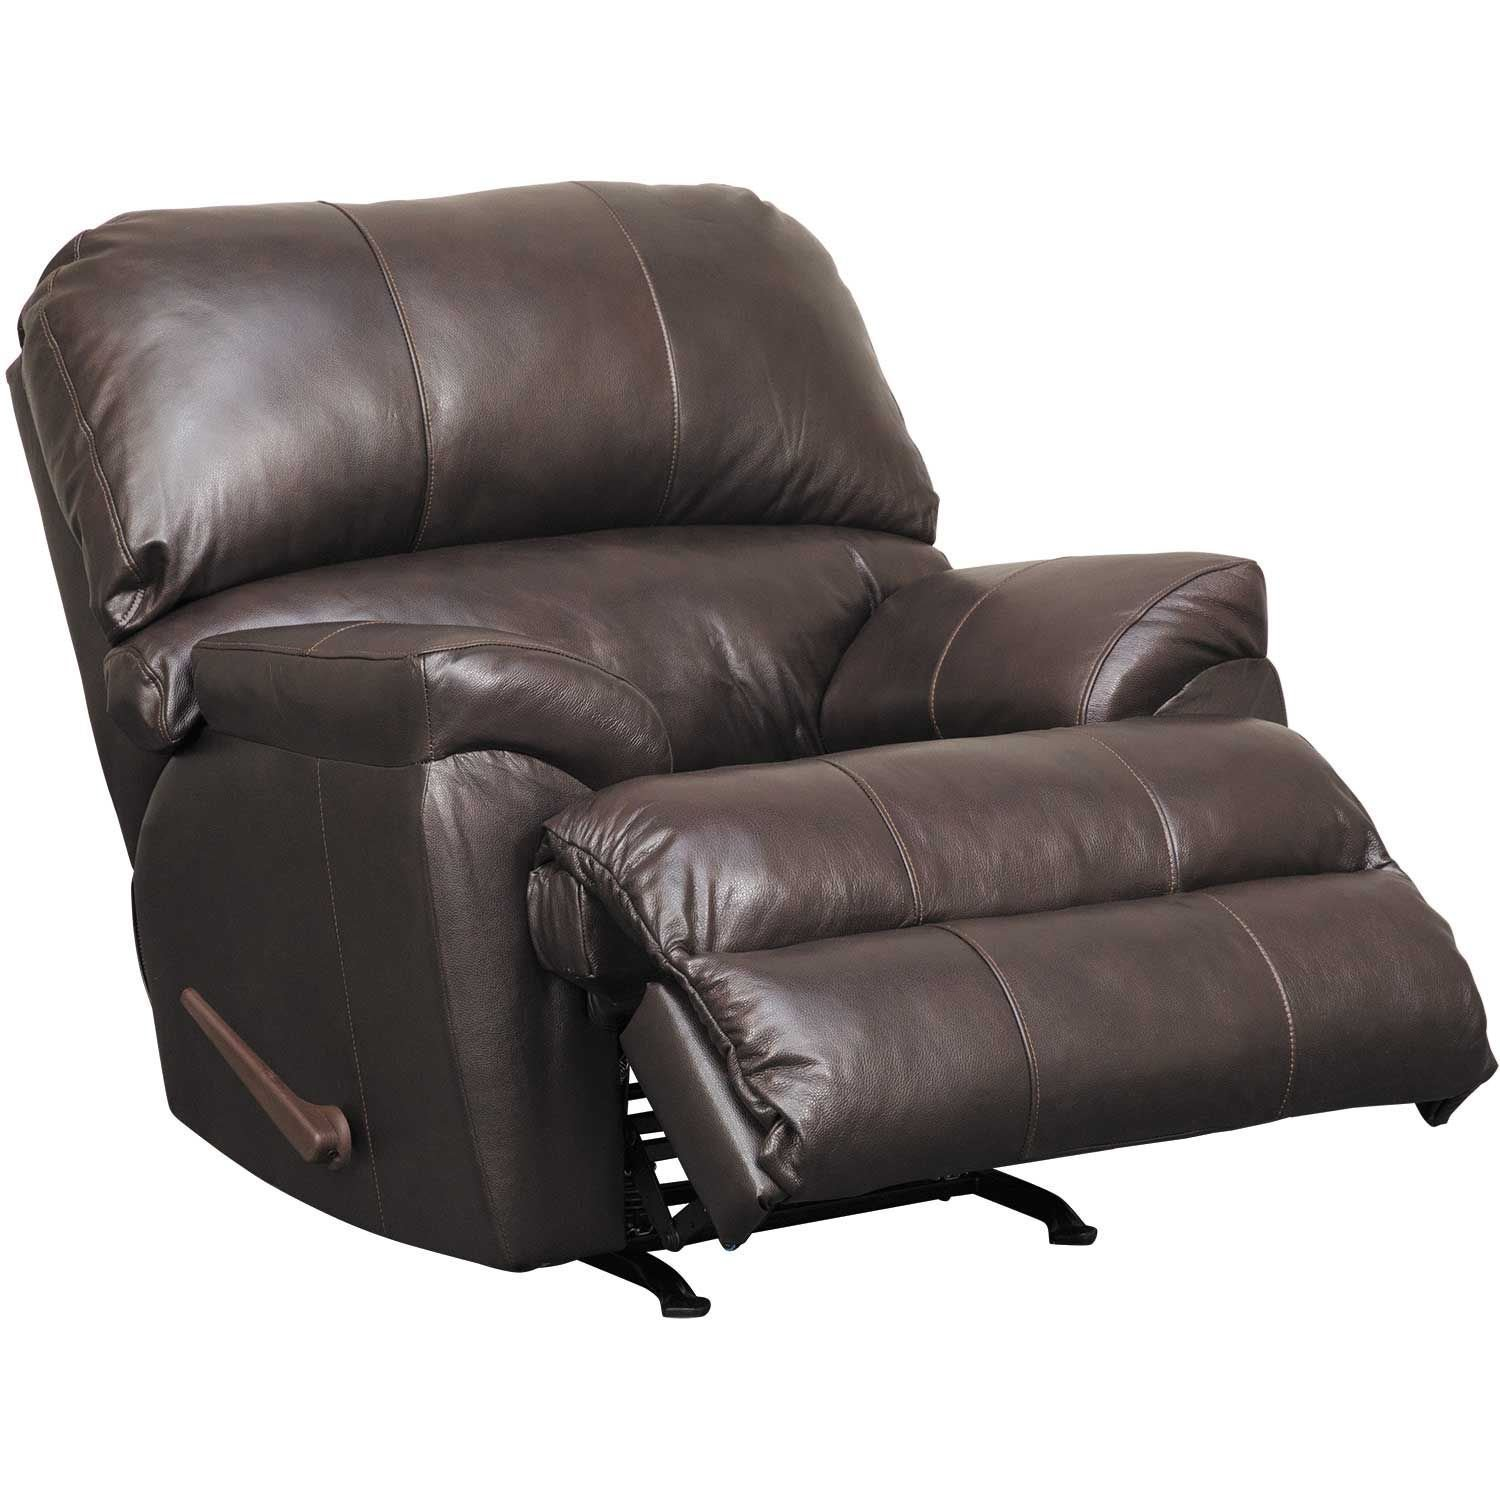 Picture of Graham Bark Leather Rocker Recliner